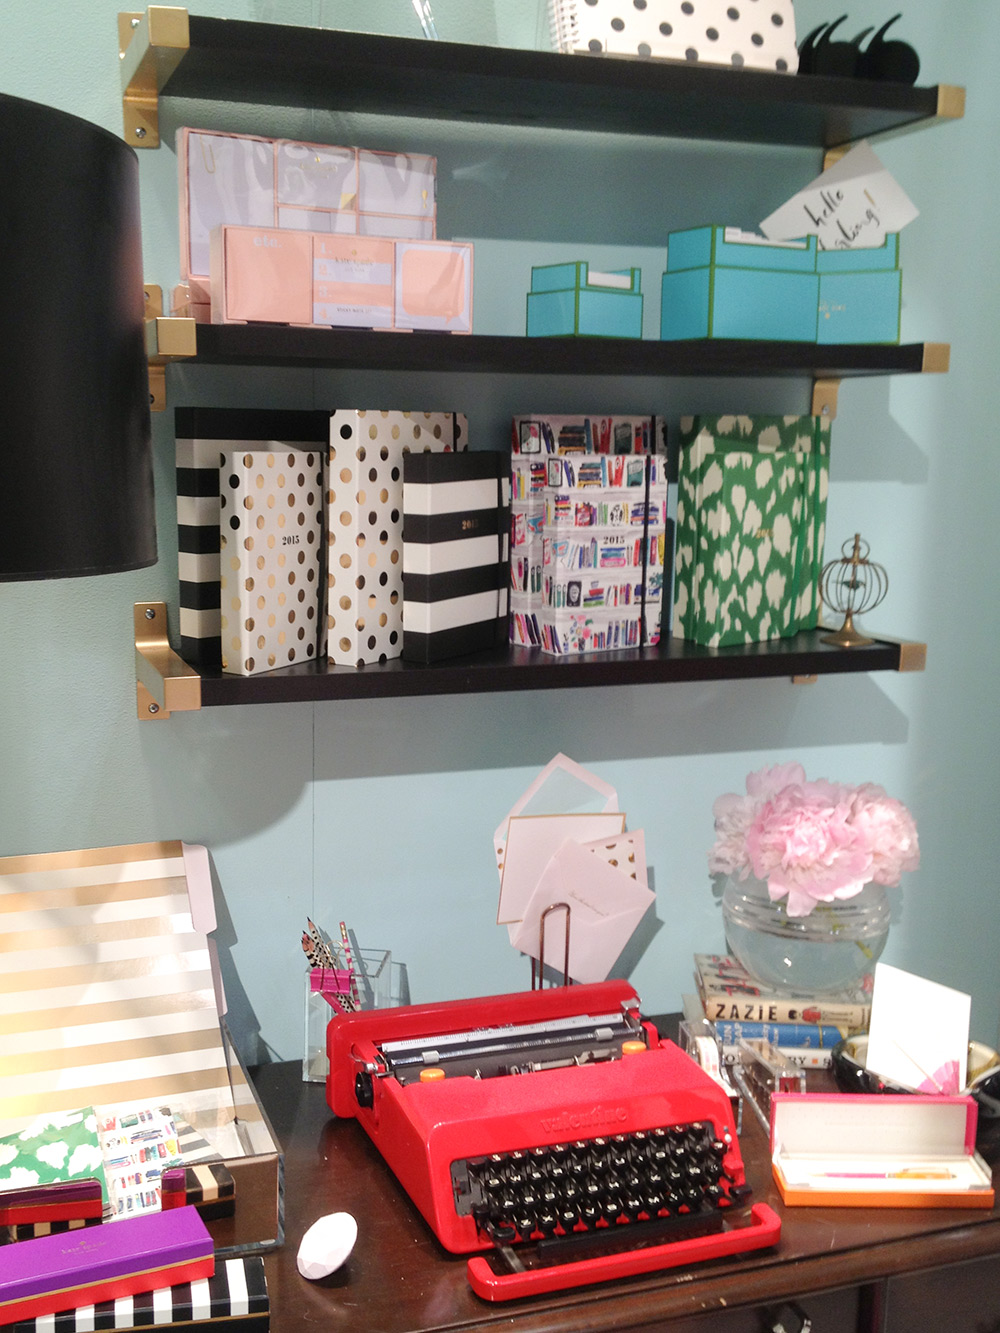 Such an inviting setting at the   Kate Spade   booth by   Lifeguard Press